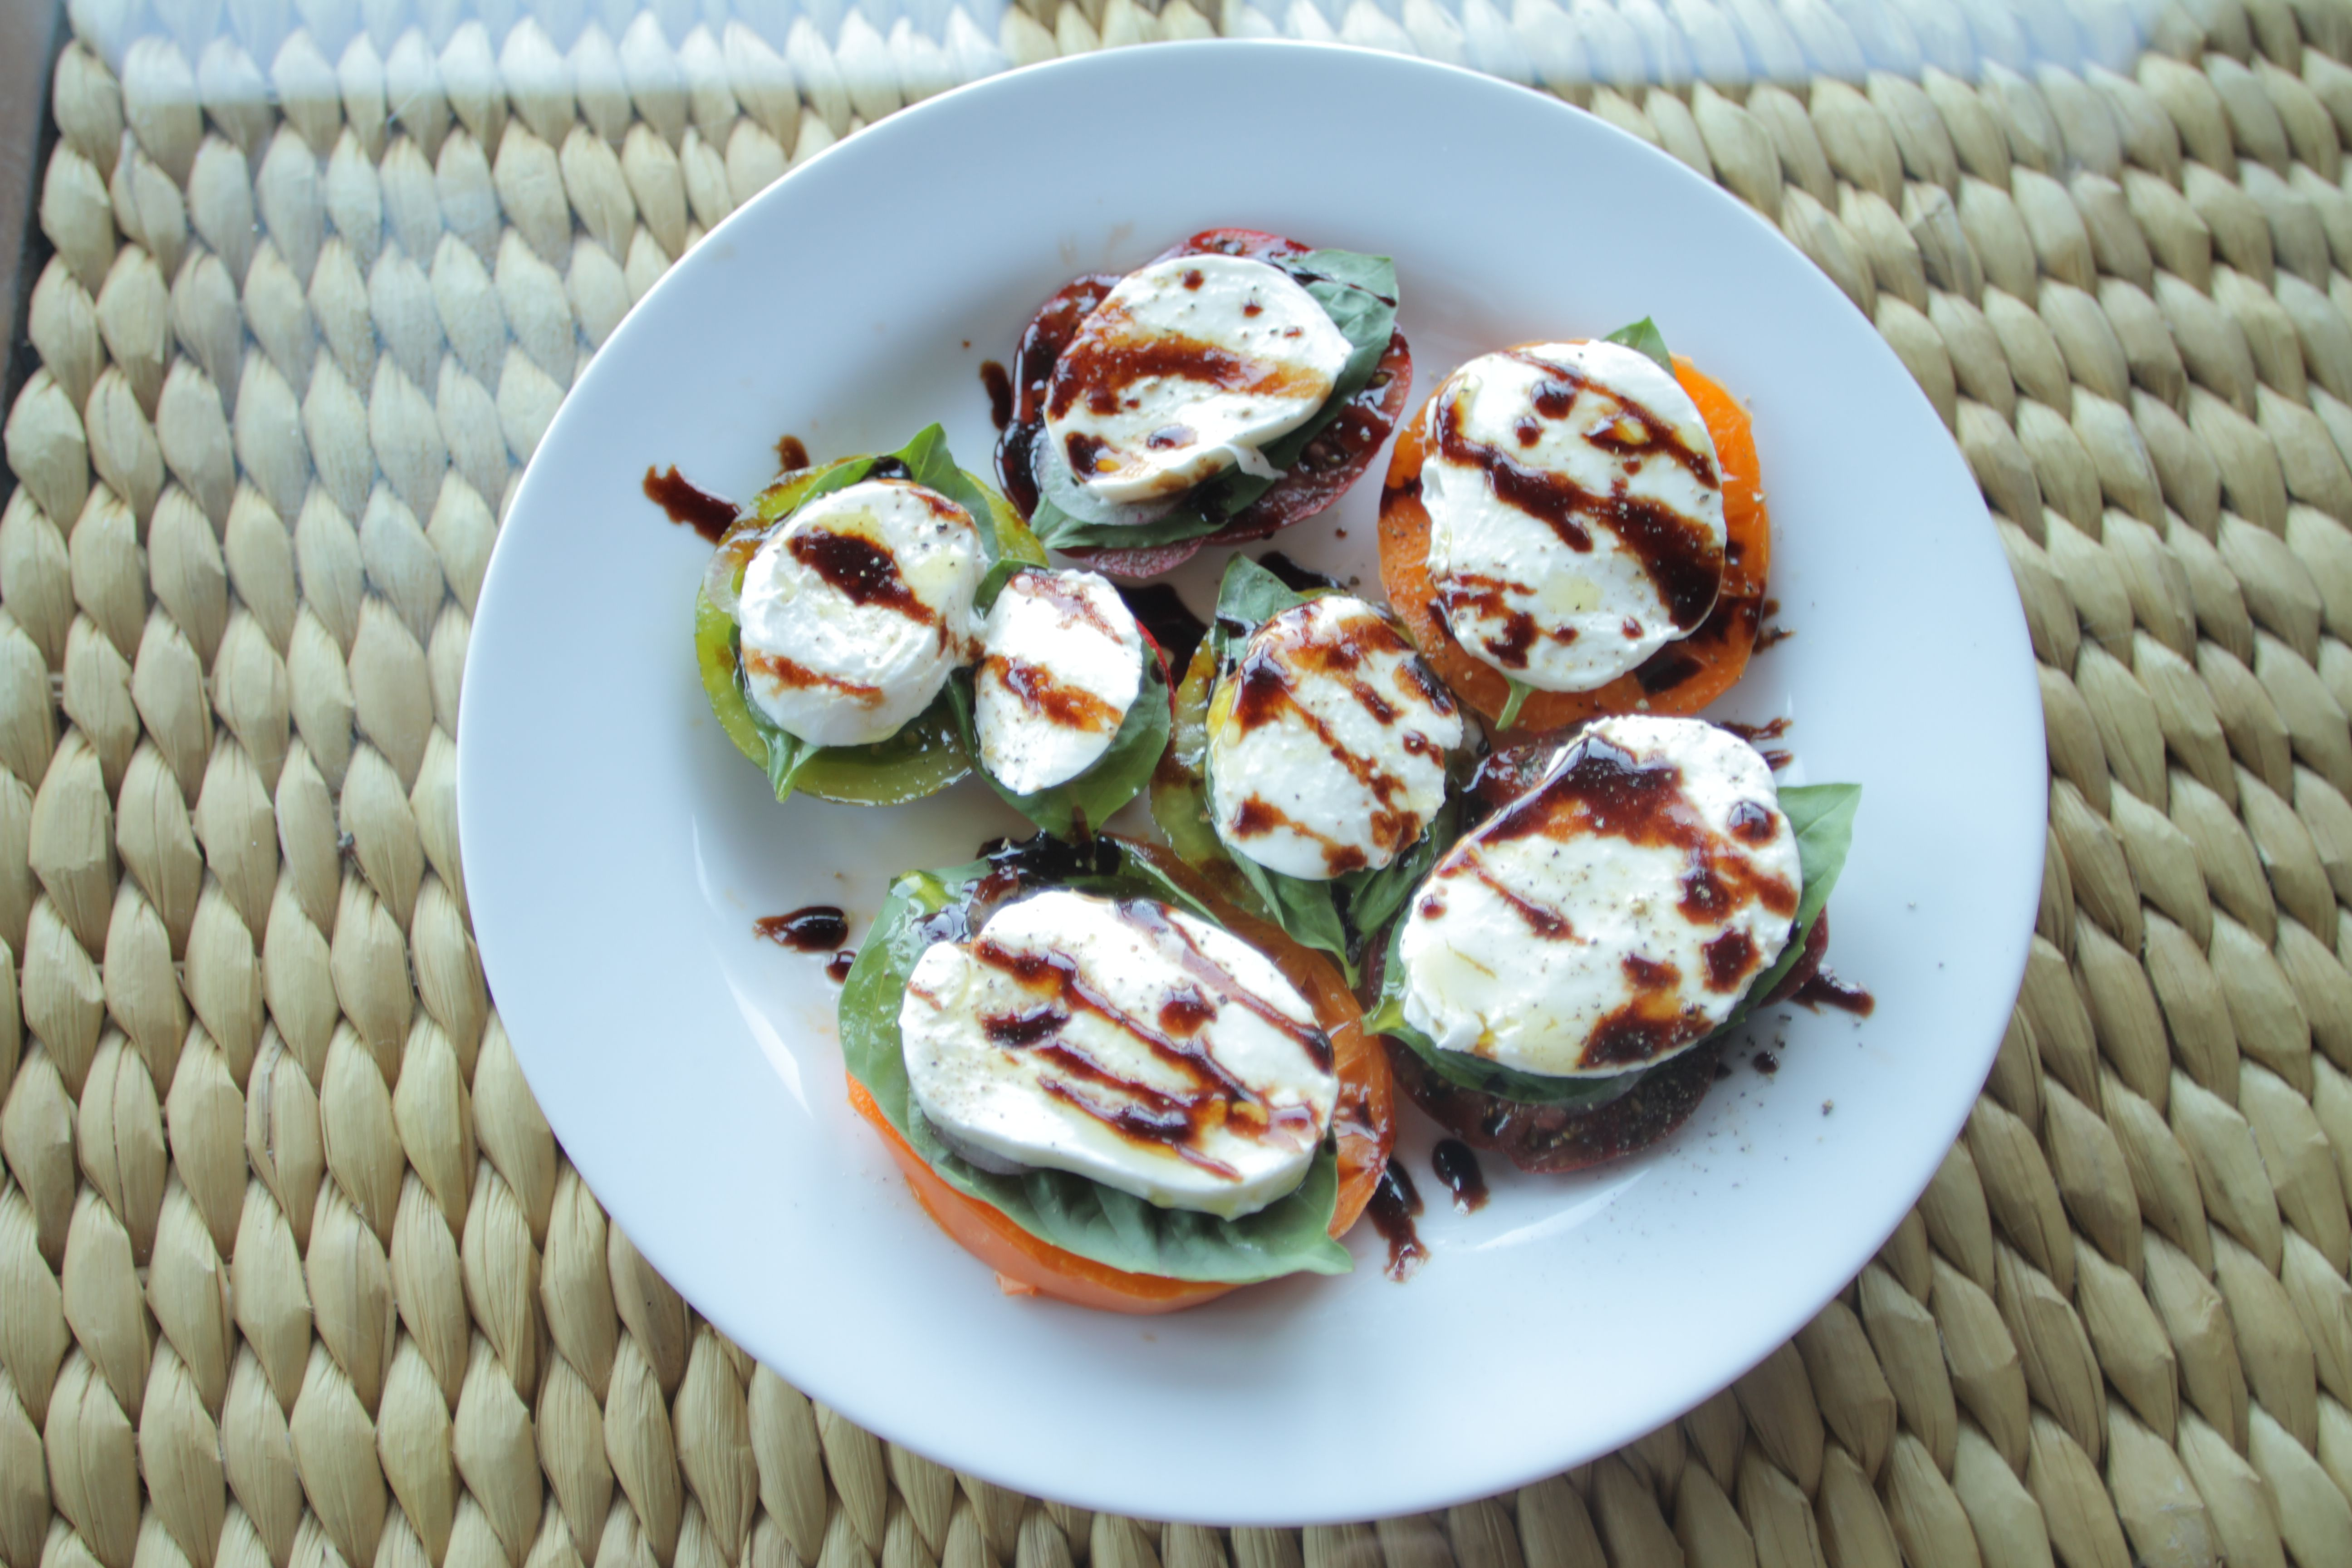 Caprese Salad with Balsamic Candy Drizzle